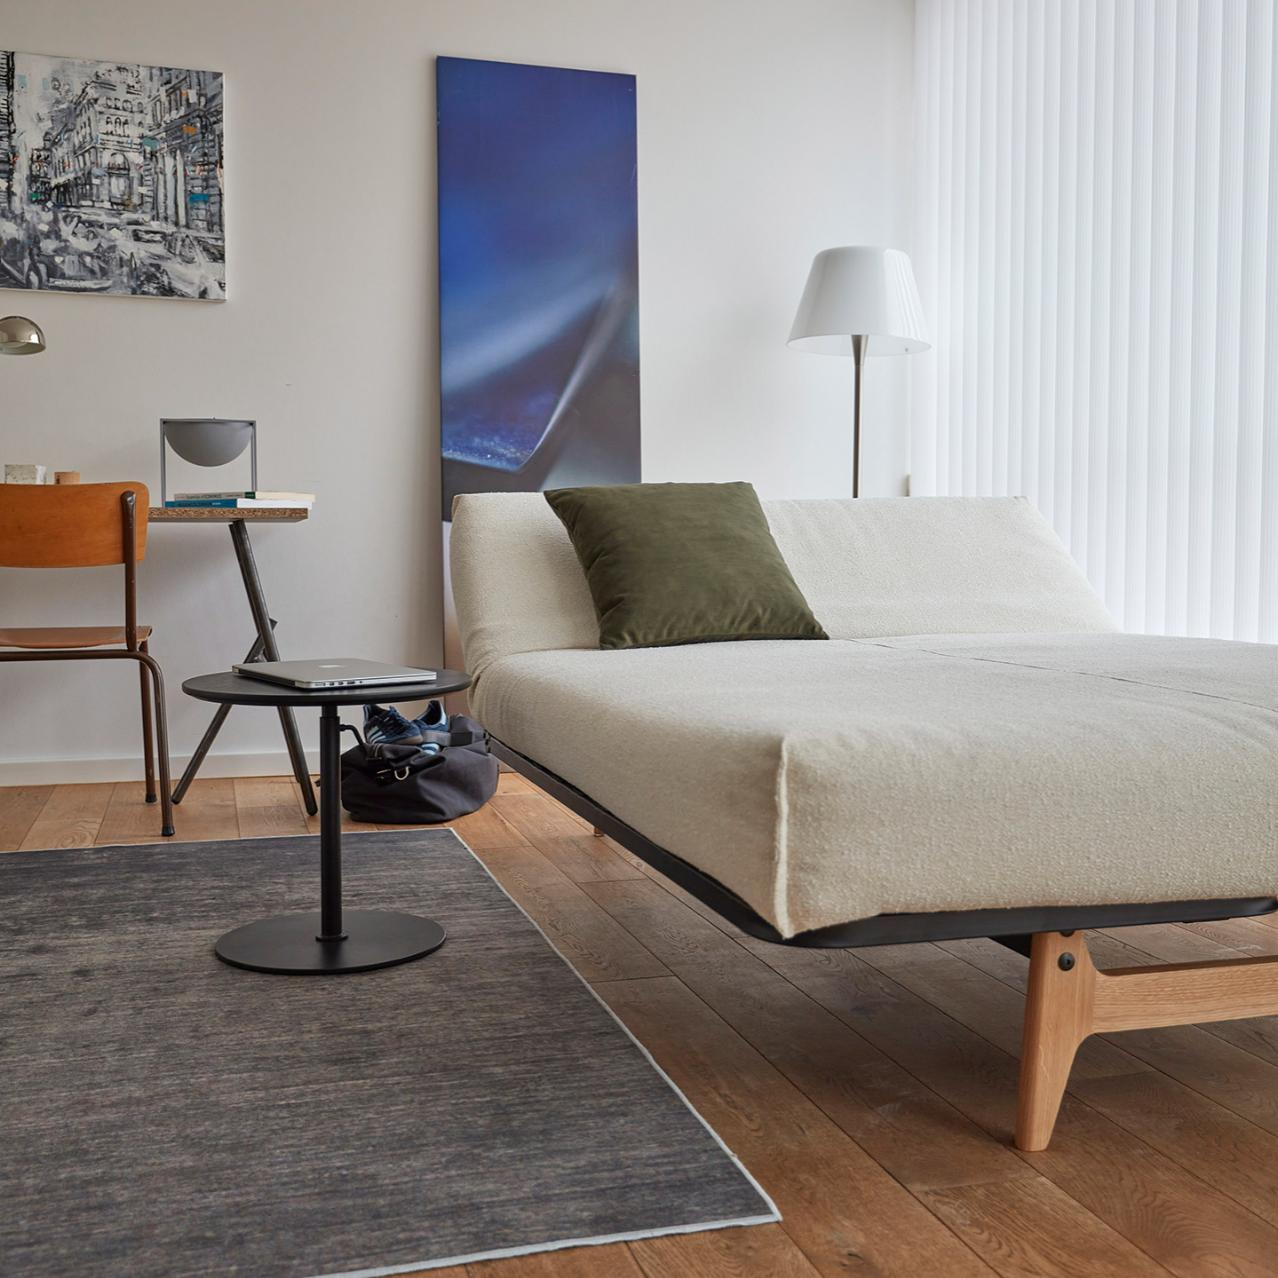 Sofabed made perfect by Danish Design from Innovation Living